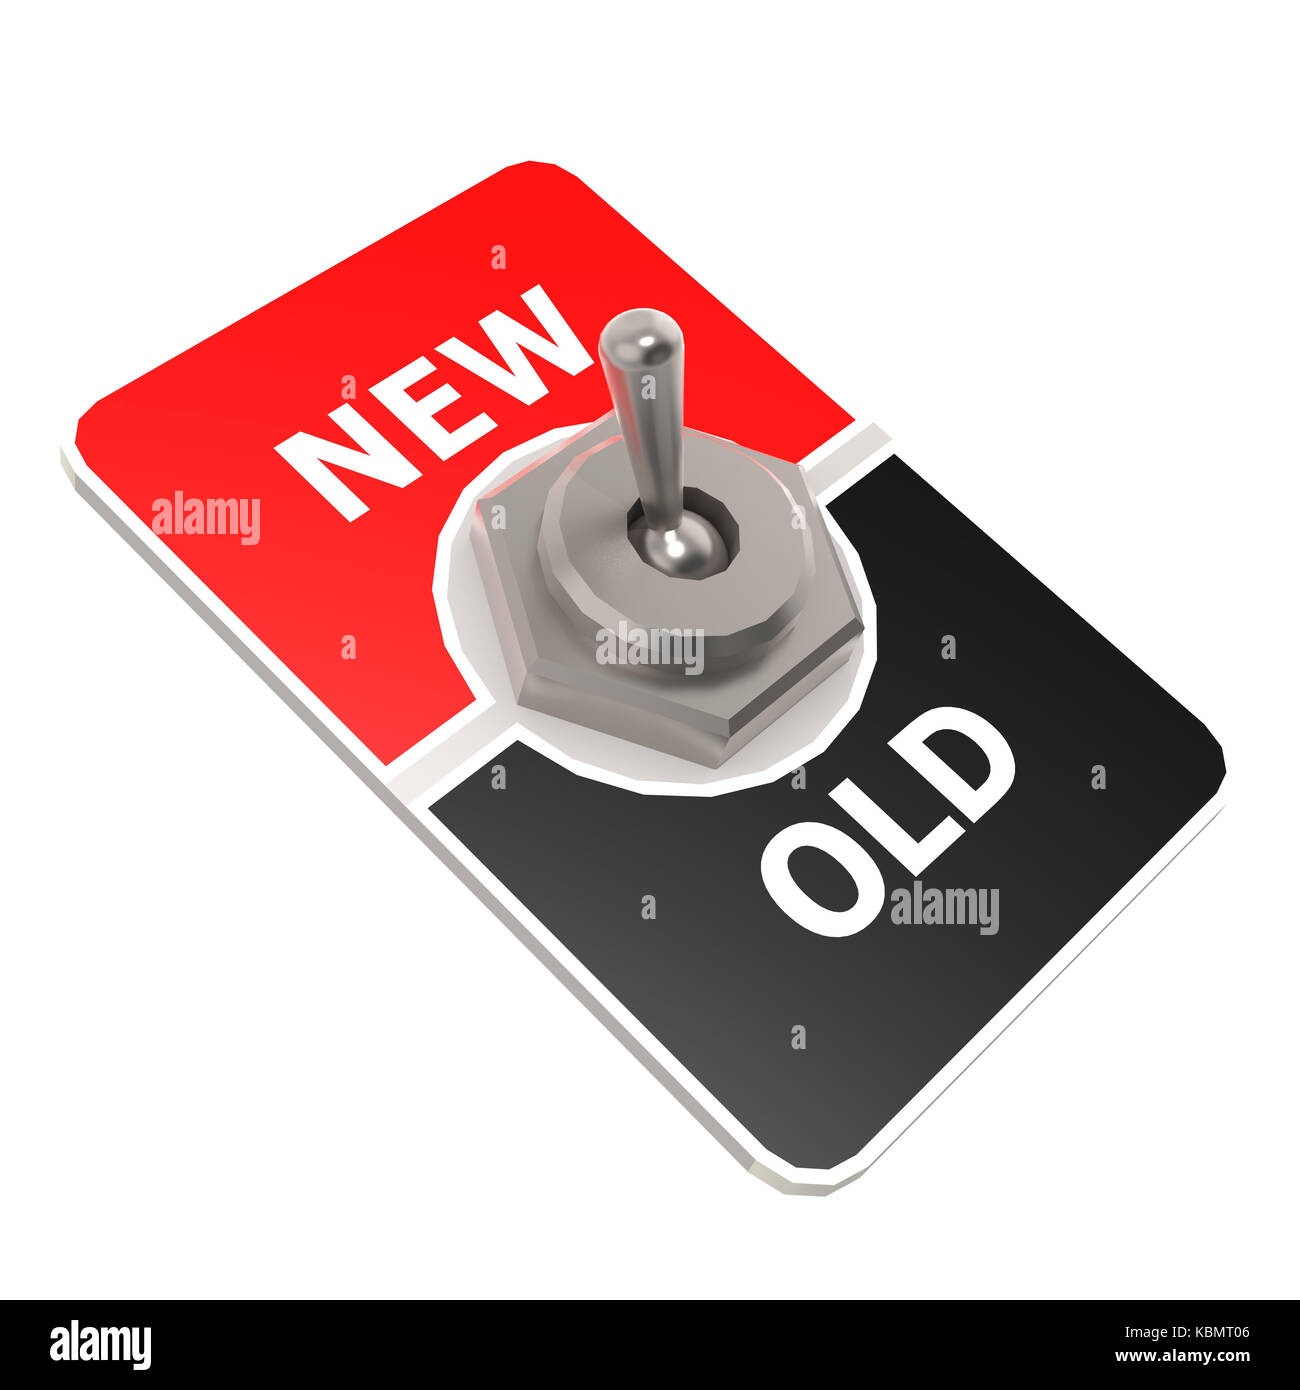 New old toggle switch image with hi-res rendered artwork that could be used for any graphic design. - Stock Image